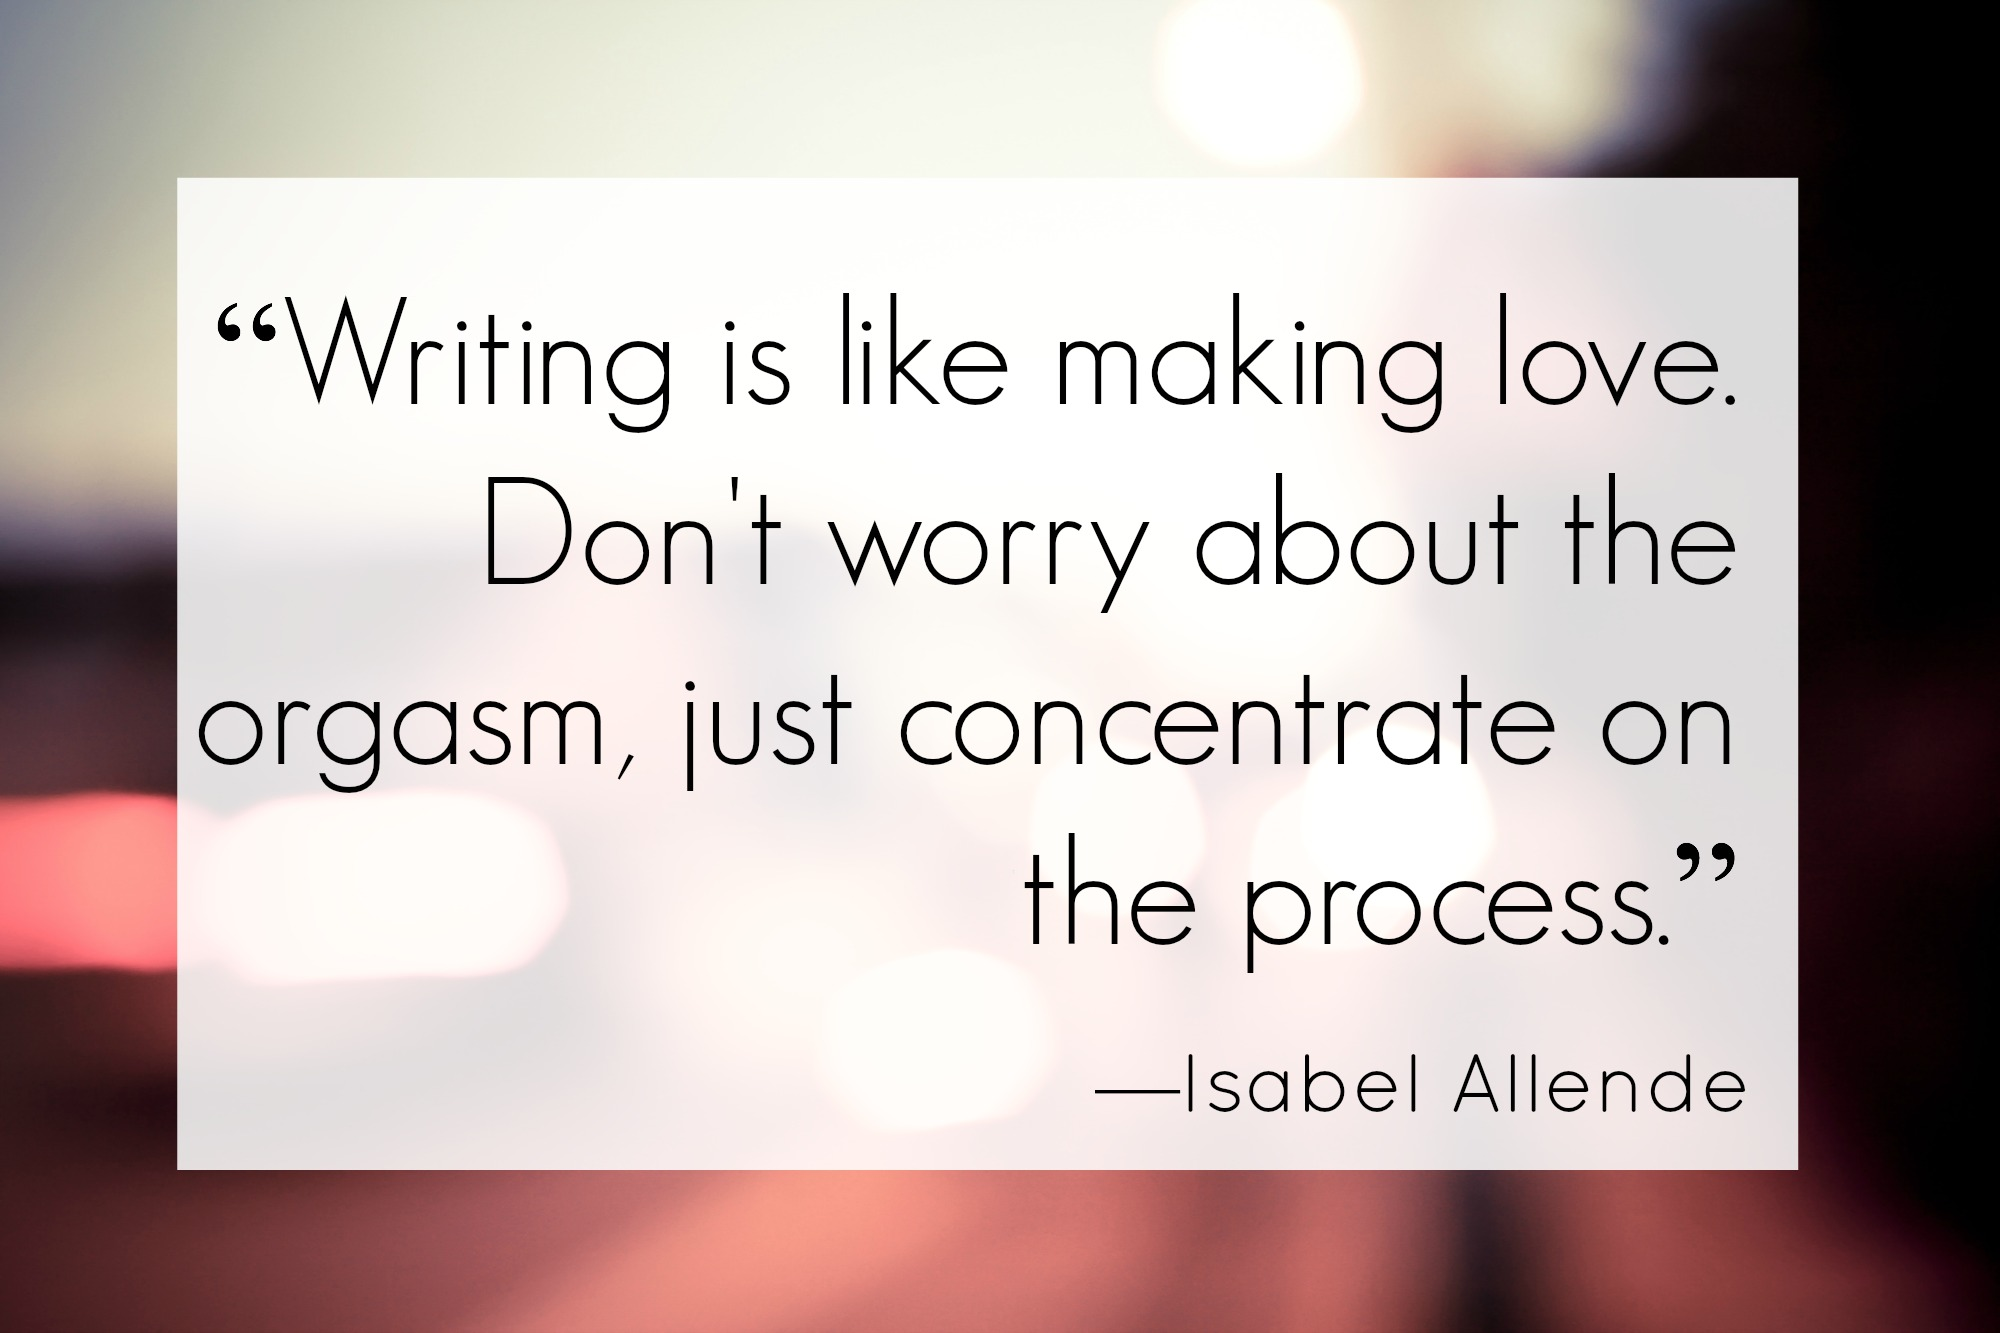 Allende on Writing